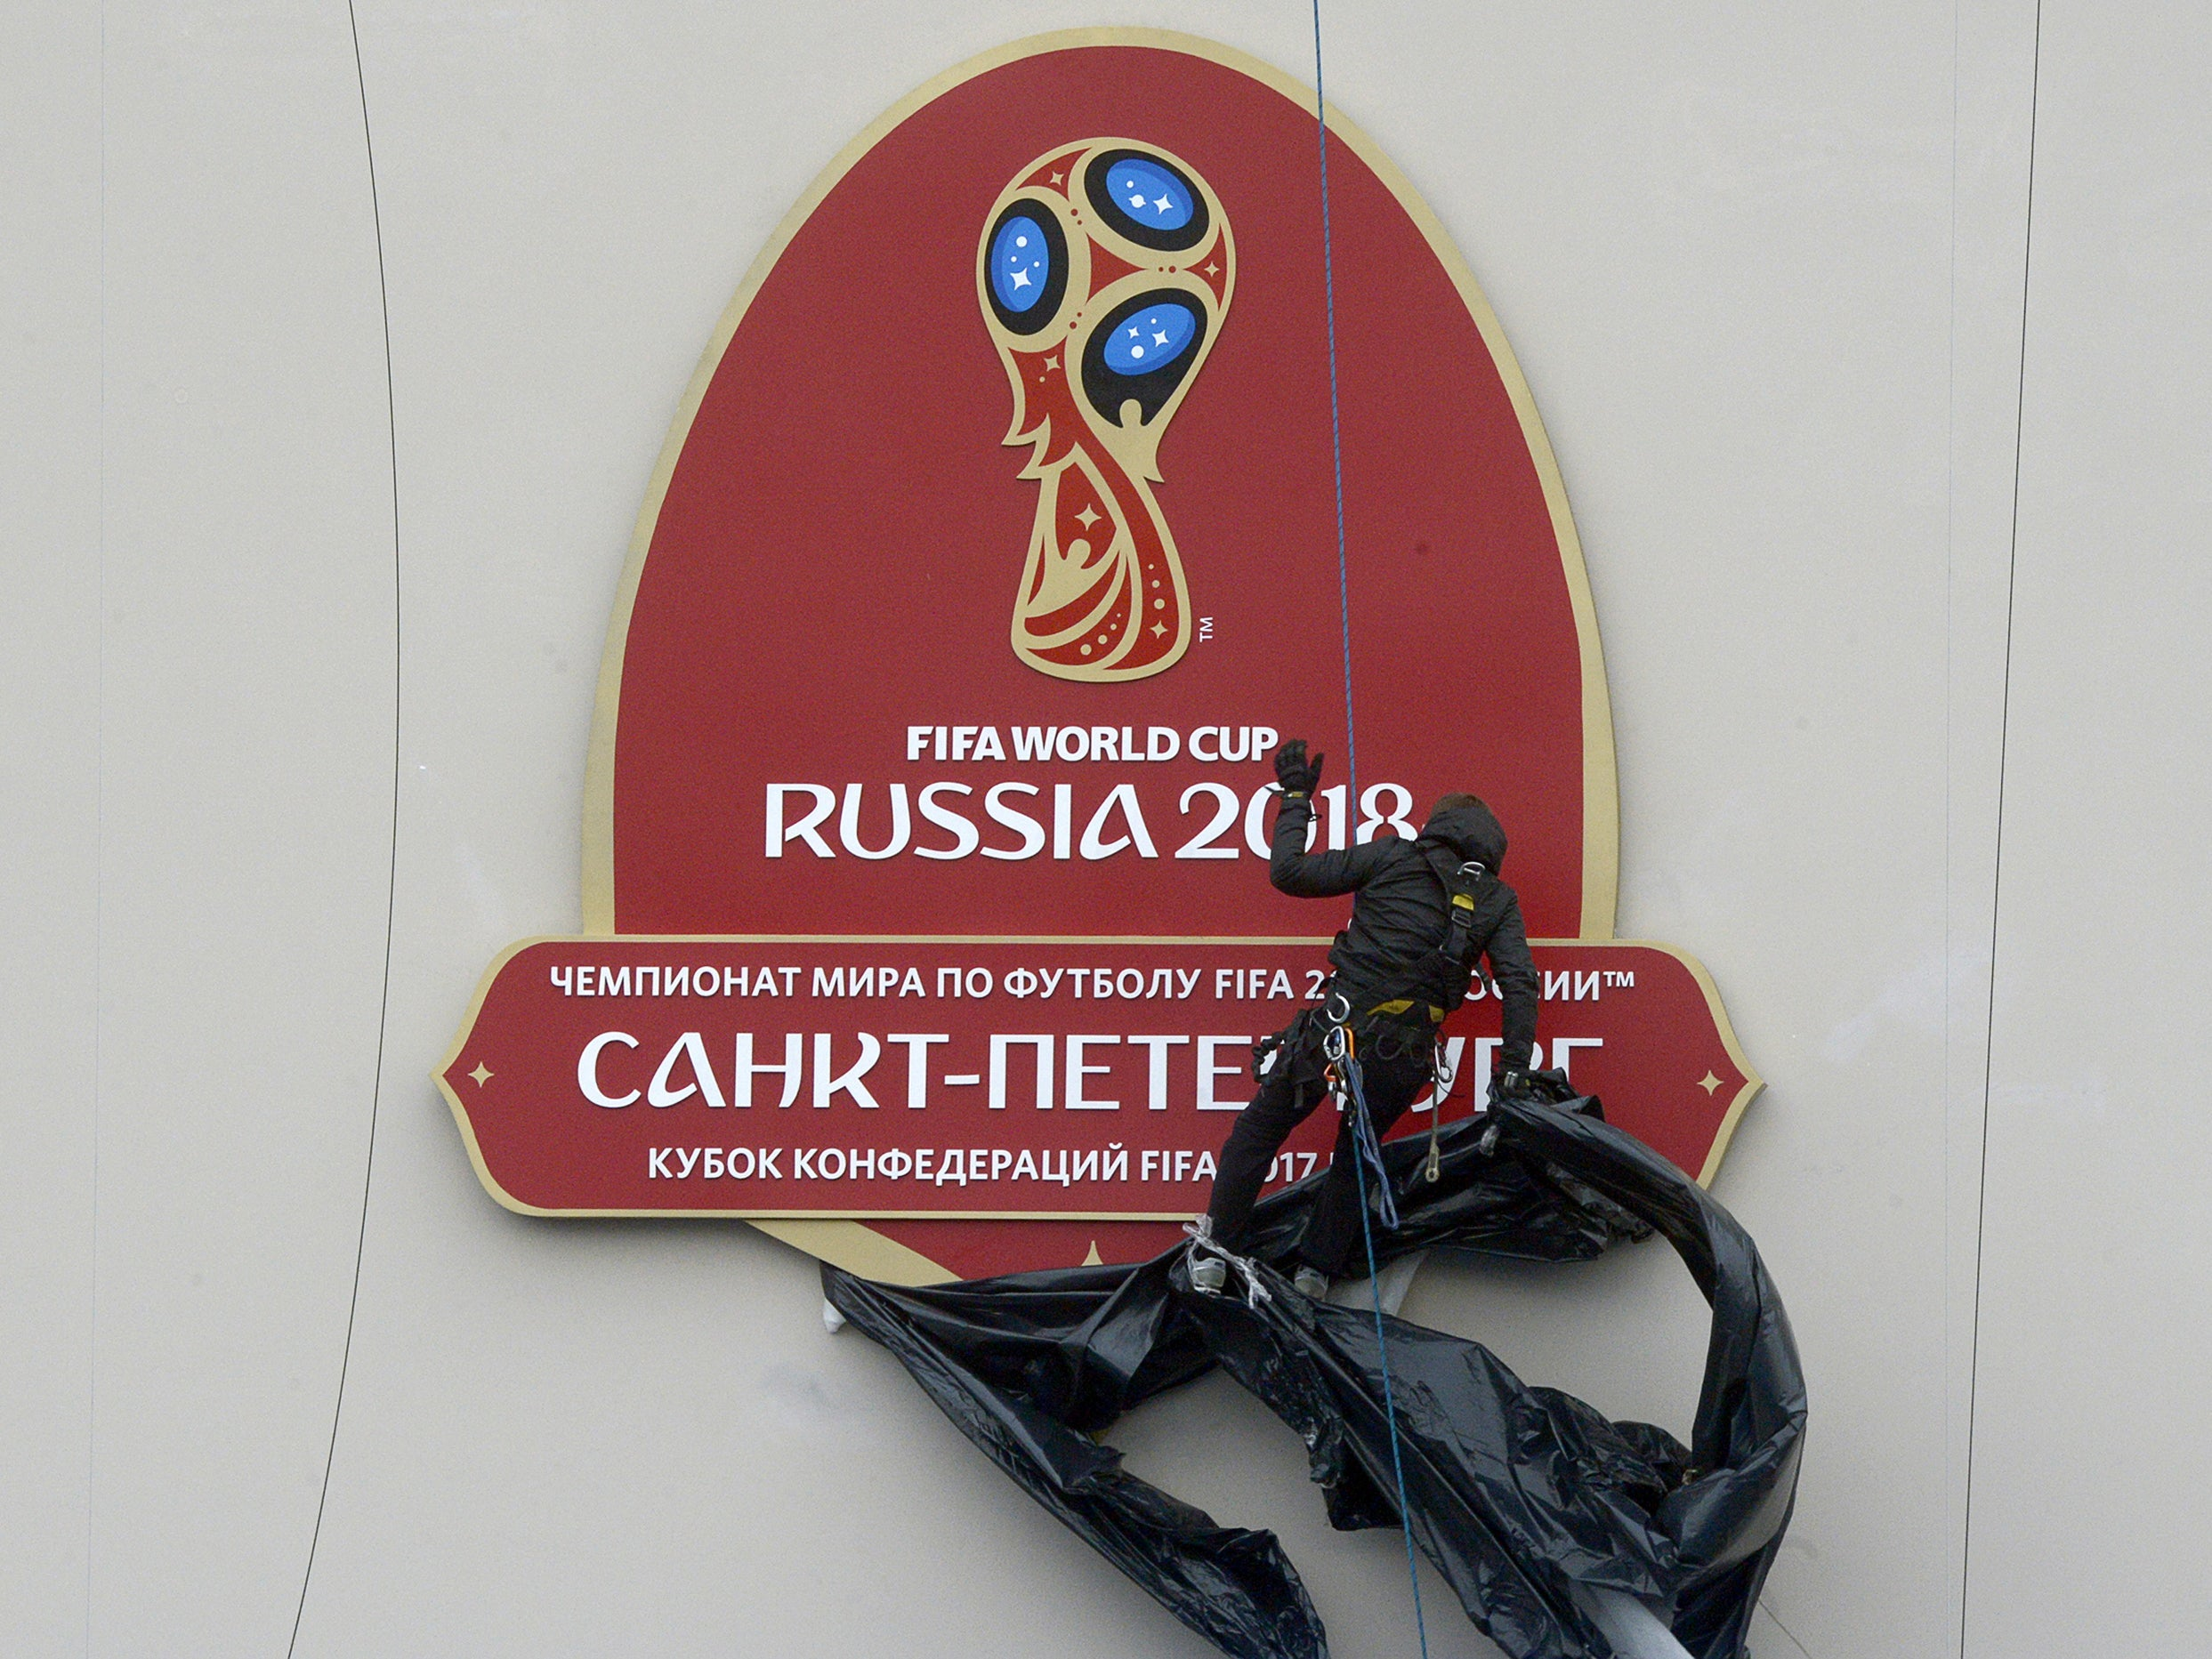 Russia worried by lacklustre ticket sales ahead of the Fifa Confederations Cup